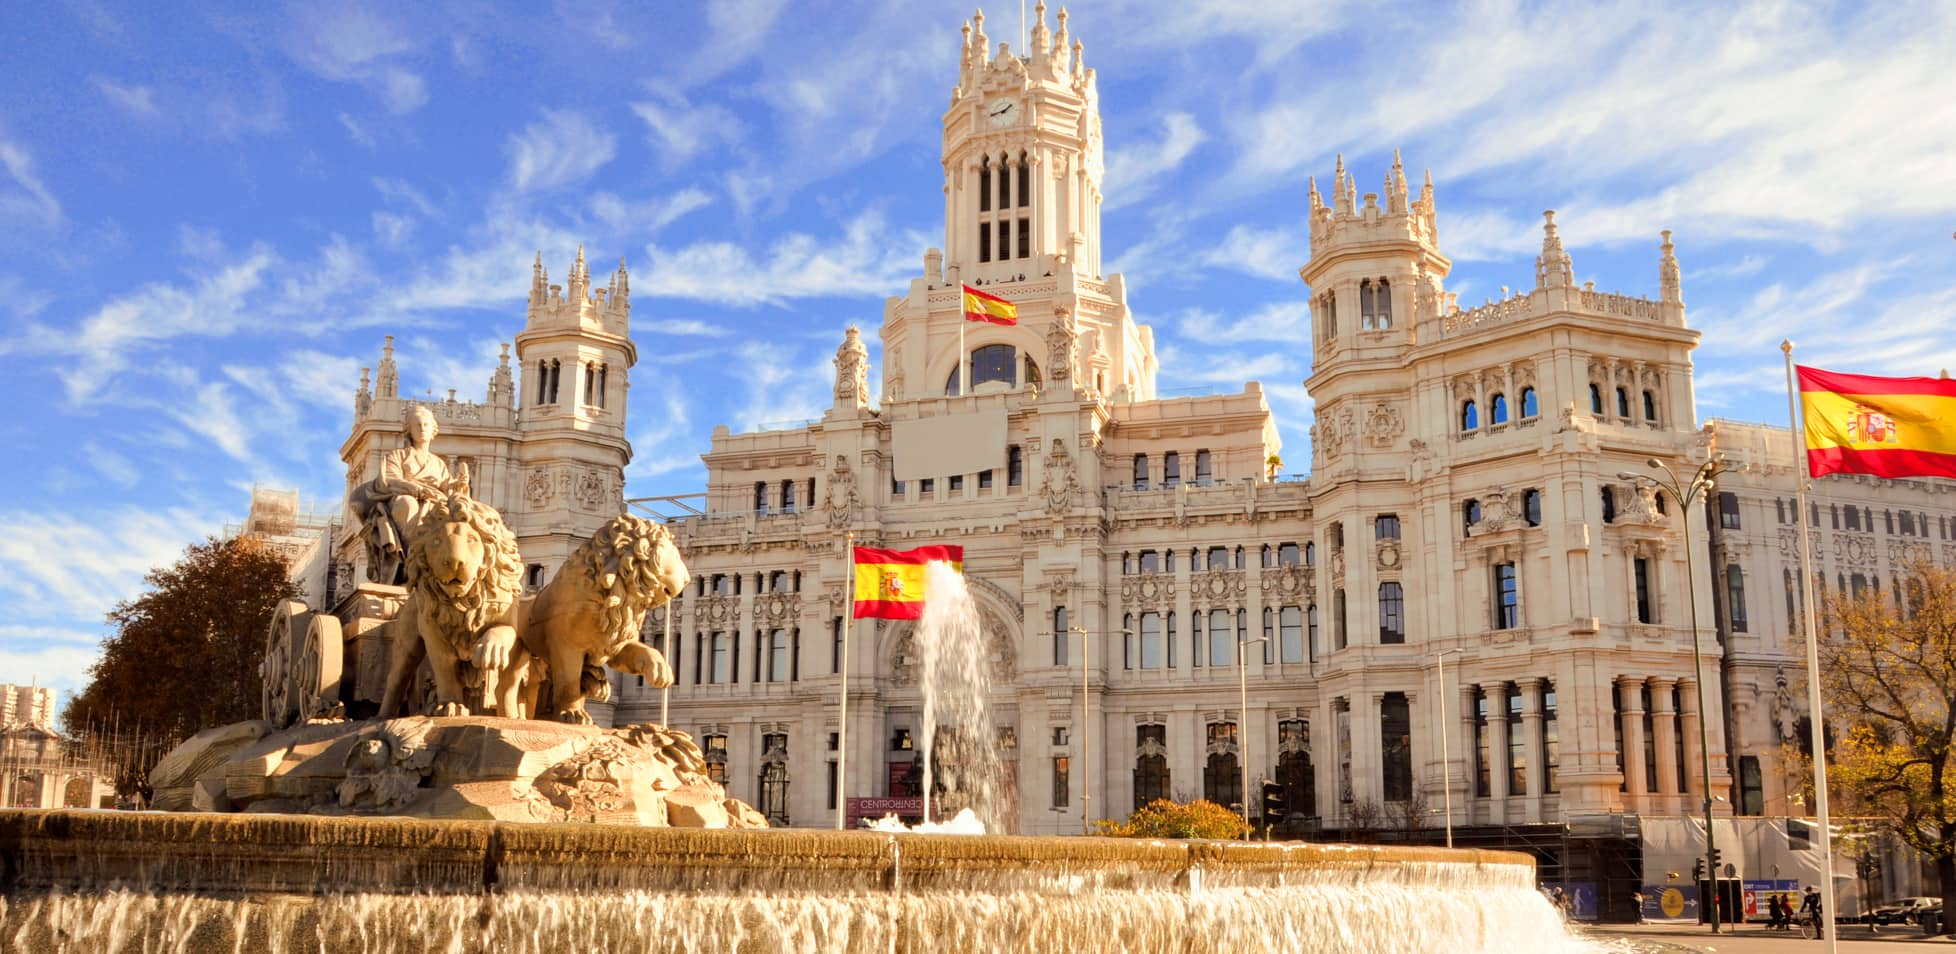 Miami to Madrid Spain $429 RT on Tap Air Portugal Discount Economy (Travel September - February 2022)